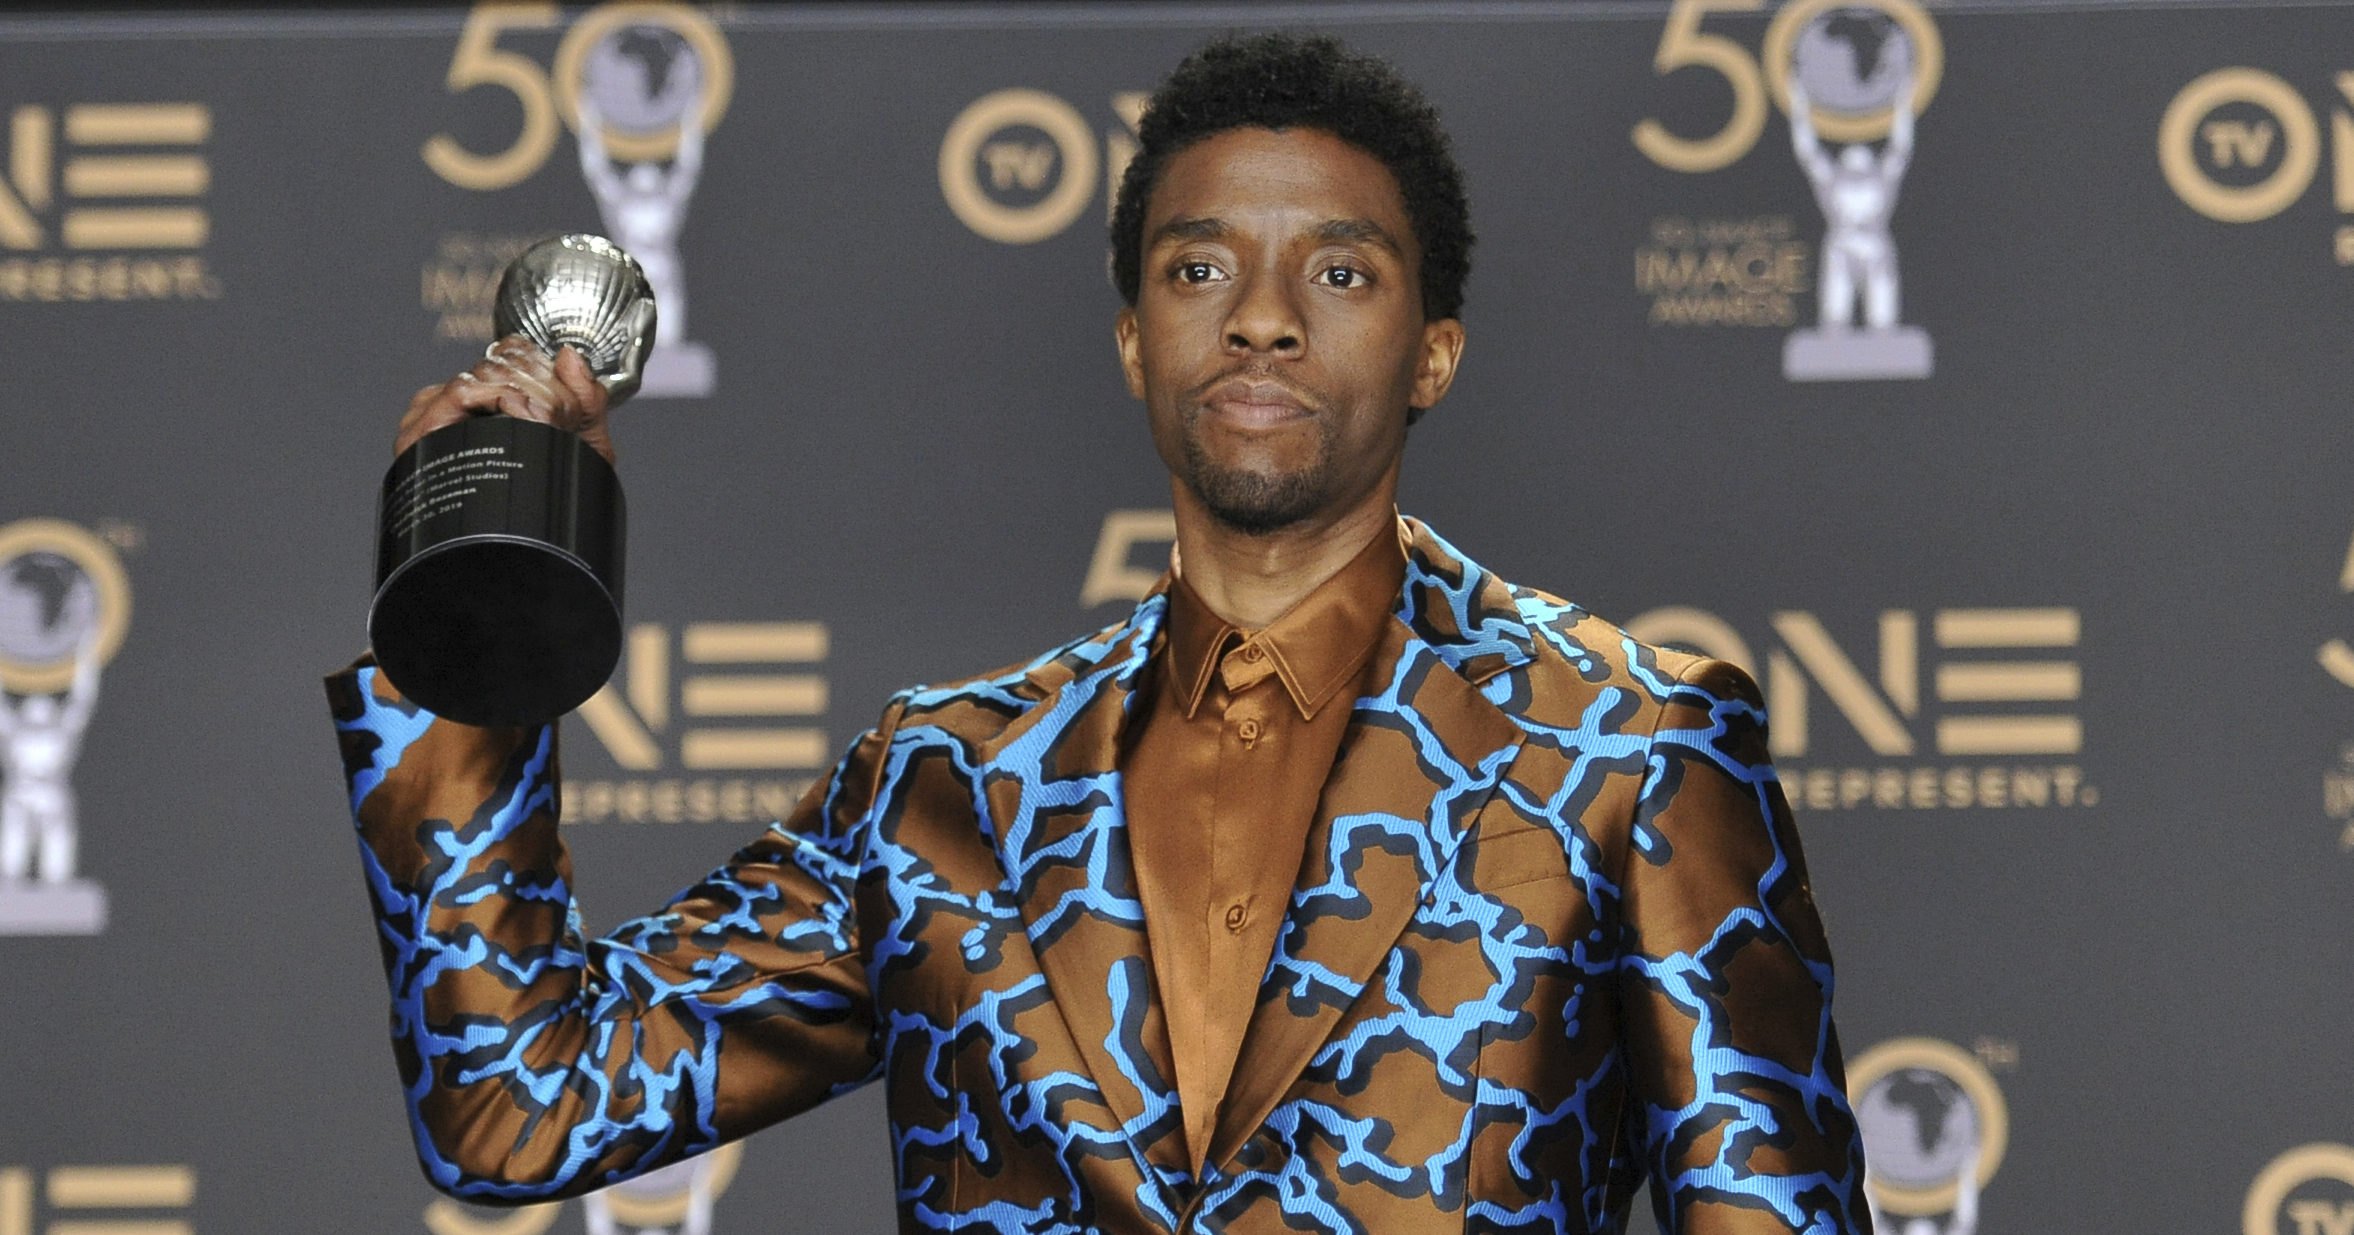 """In this March 30, 2019, file photo, Chadwick Boseman poses in the media room with the award for outstanding actor in a motion picture for """"Black Panther"""" at the 50th annual NAACP Image Awards at the Dolby Theatre in Los Angeles."""